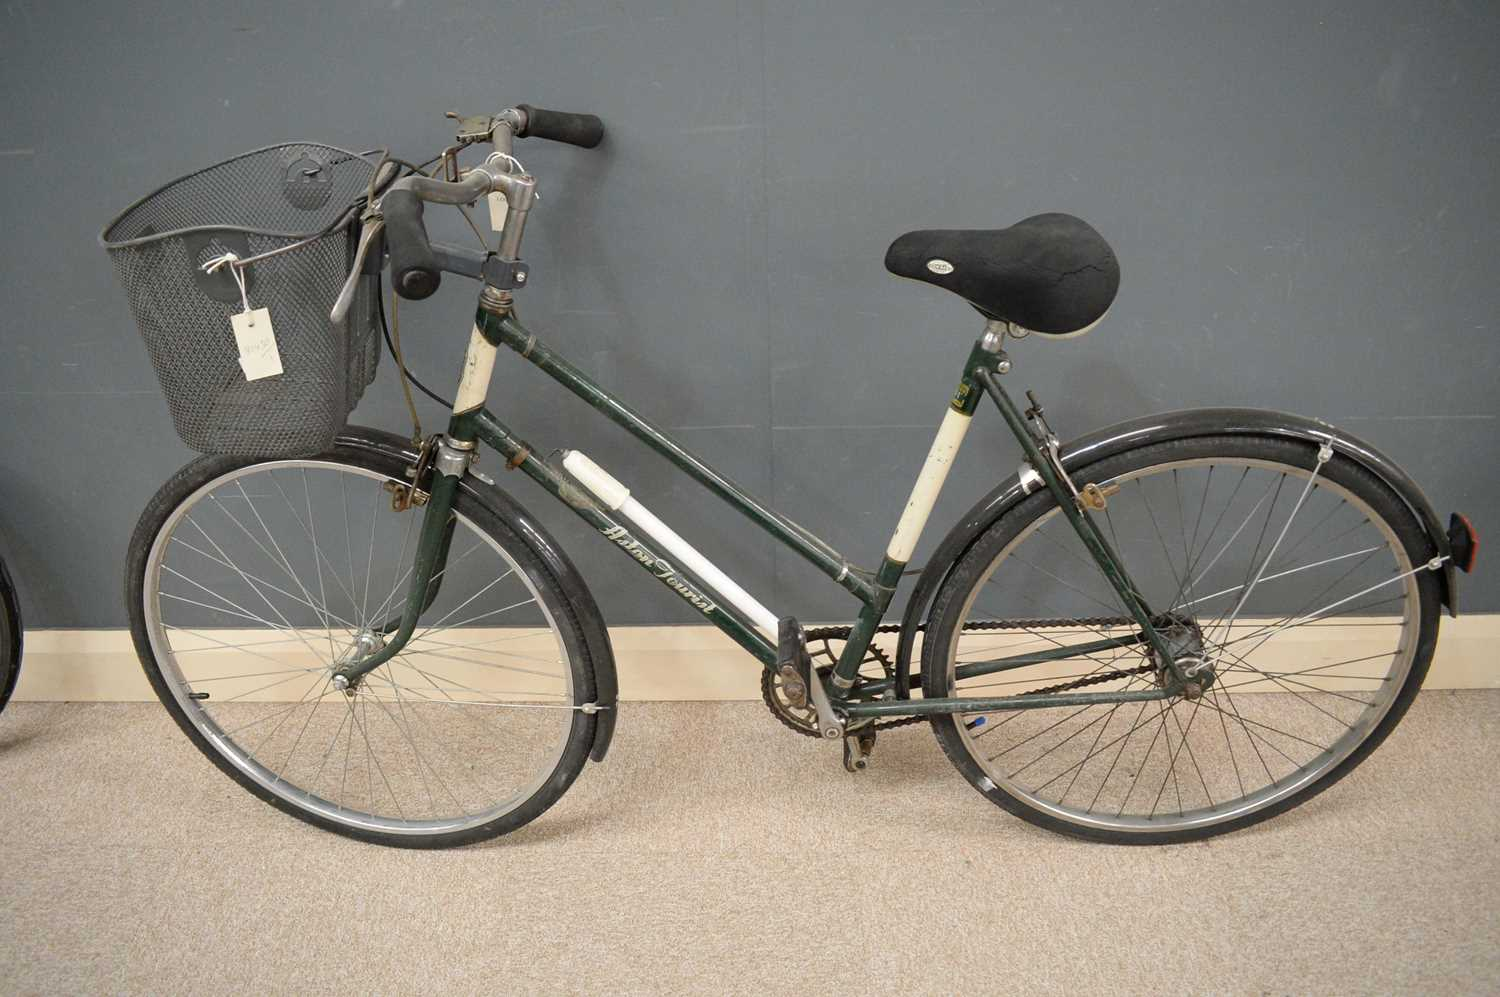 Lot 716 - A woman's Aston Tourist steel bicycle by Hercules.